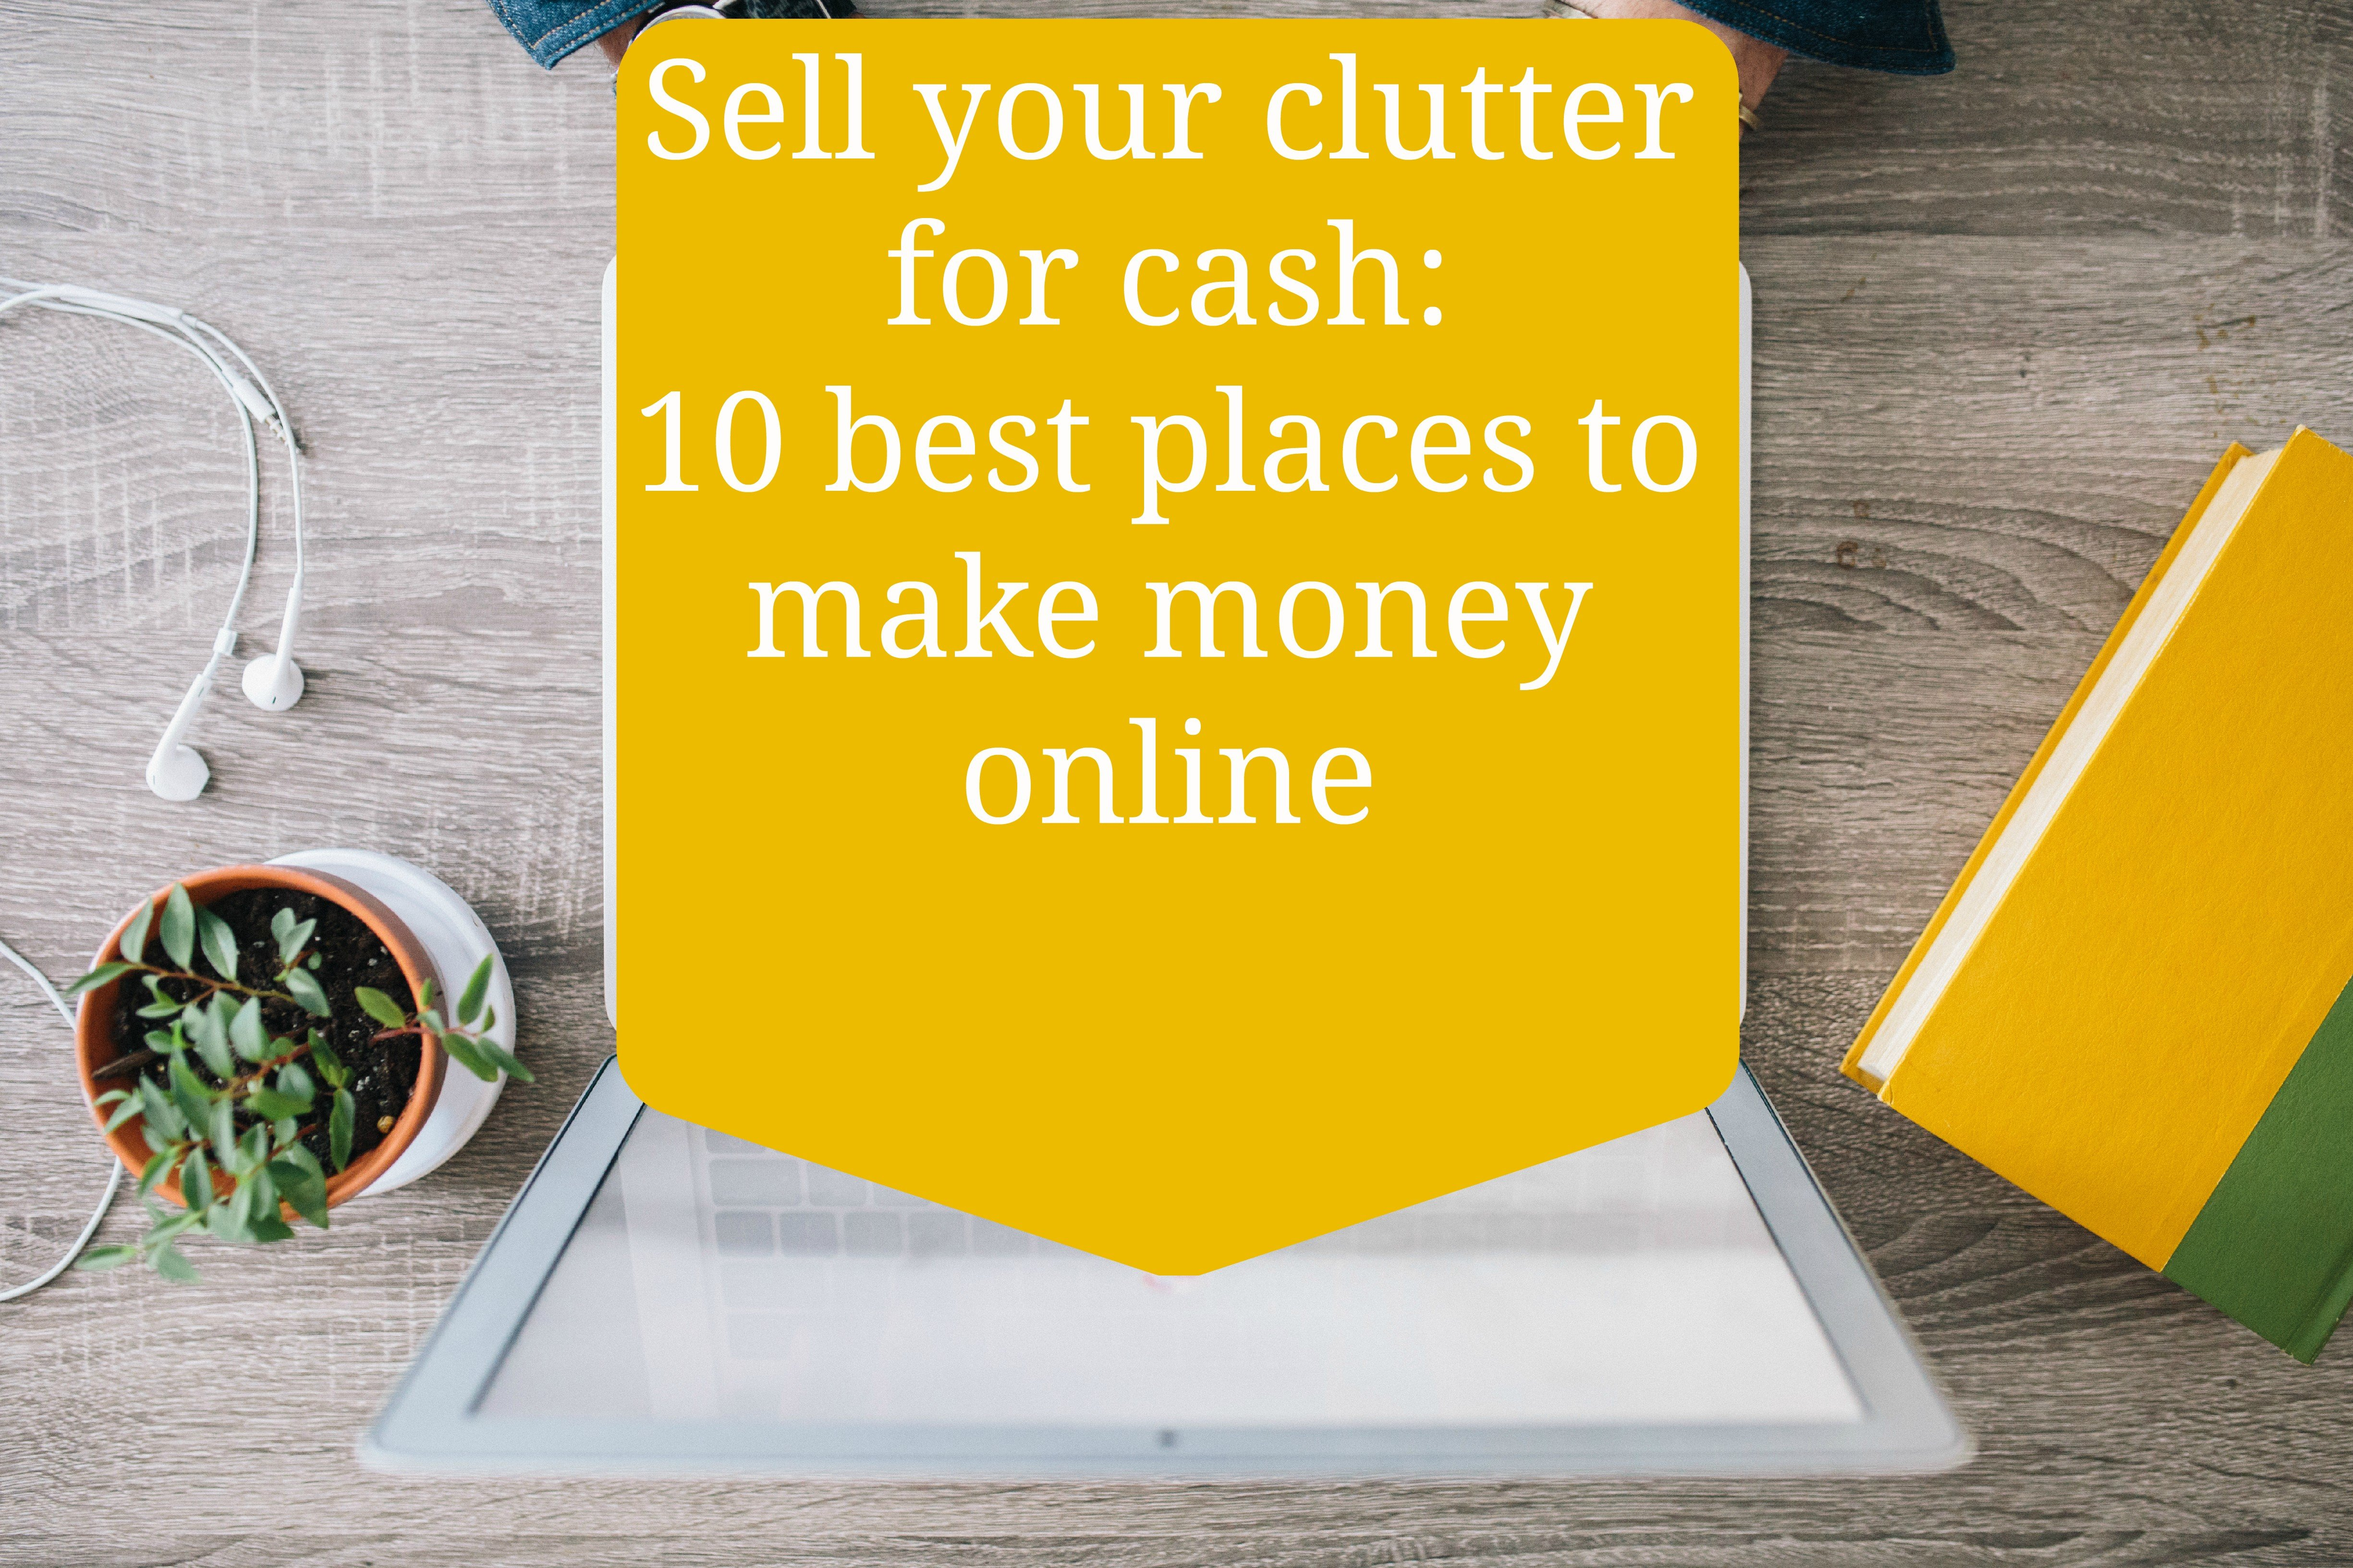 Sell your clutter for cash: 10 best places to make money online